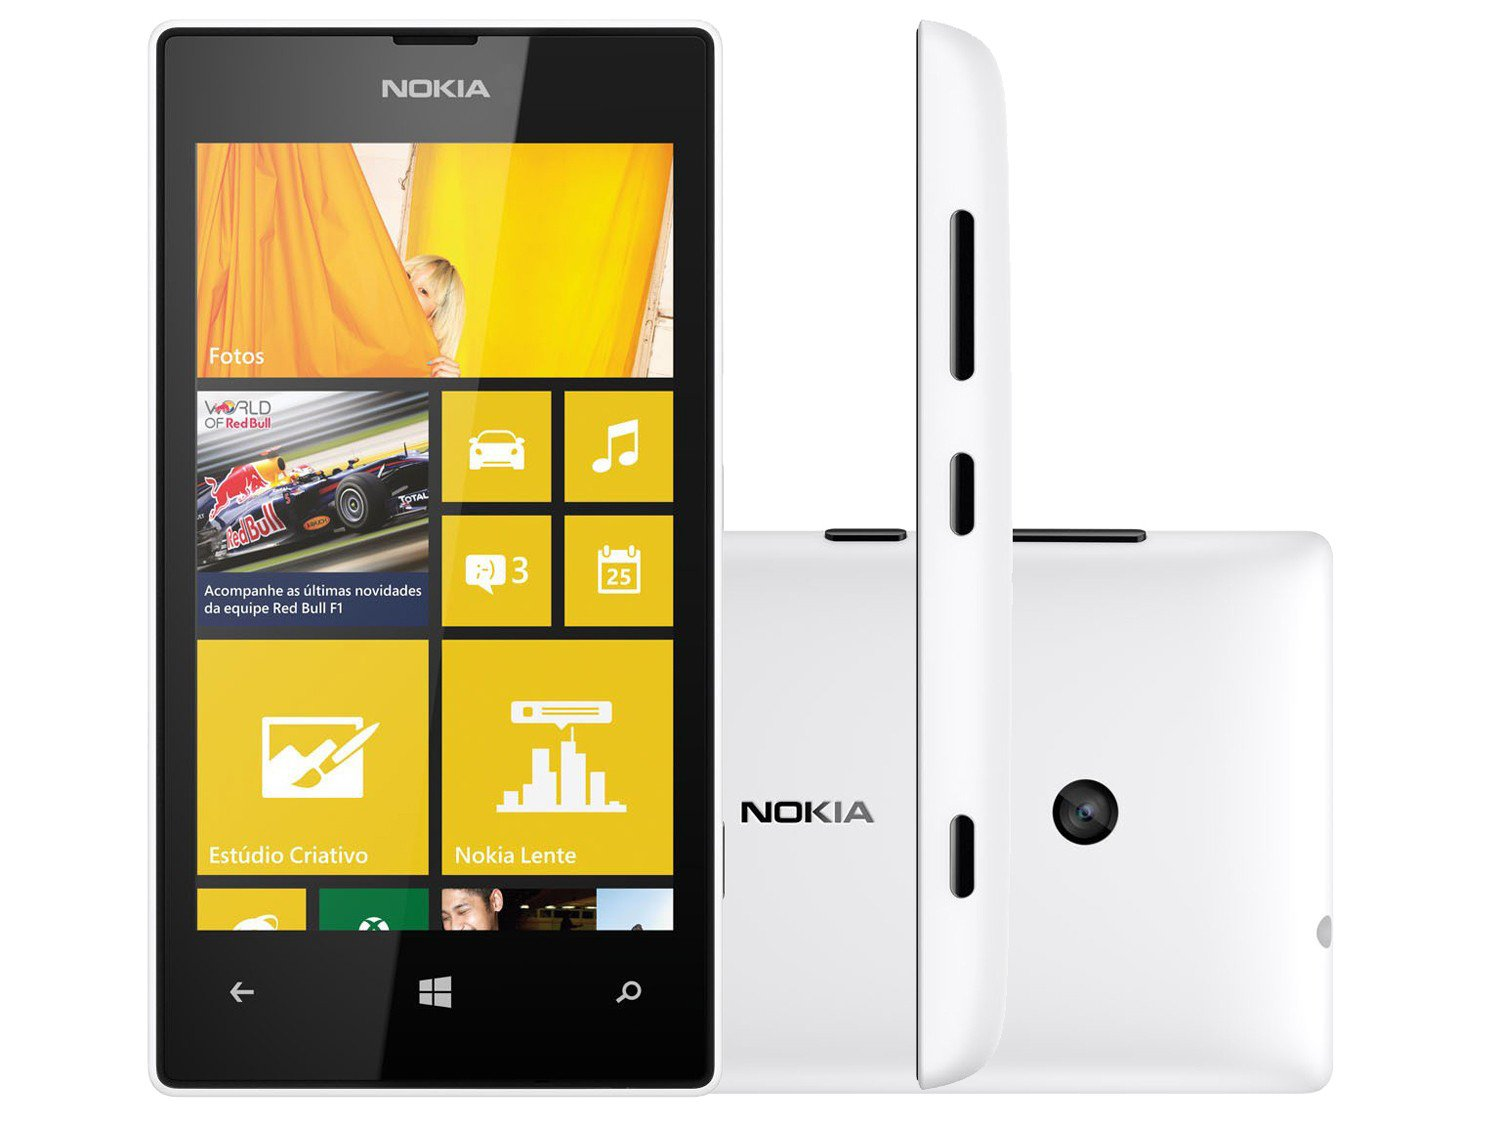 smartphone-nokia-lumia-520-3g-windows-ph